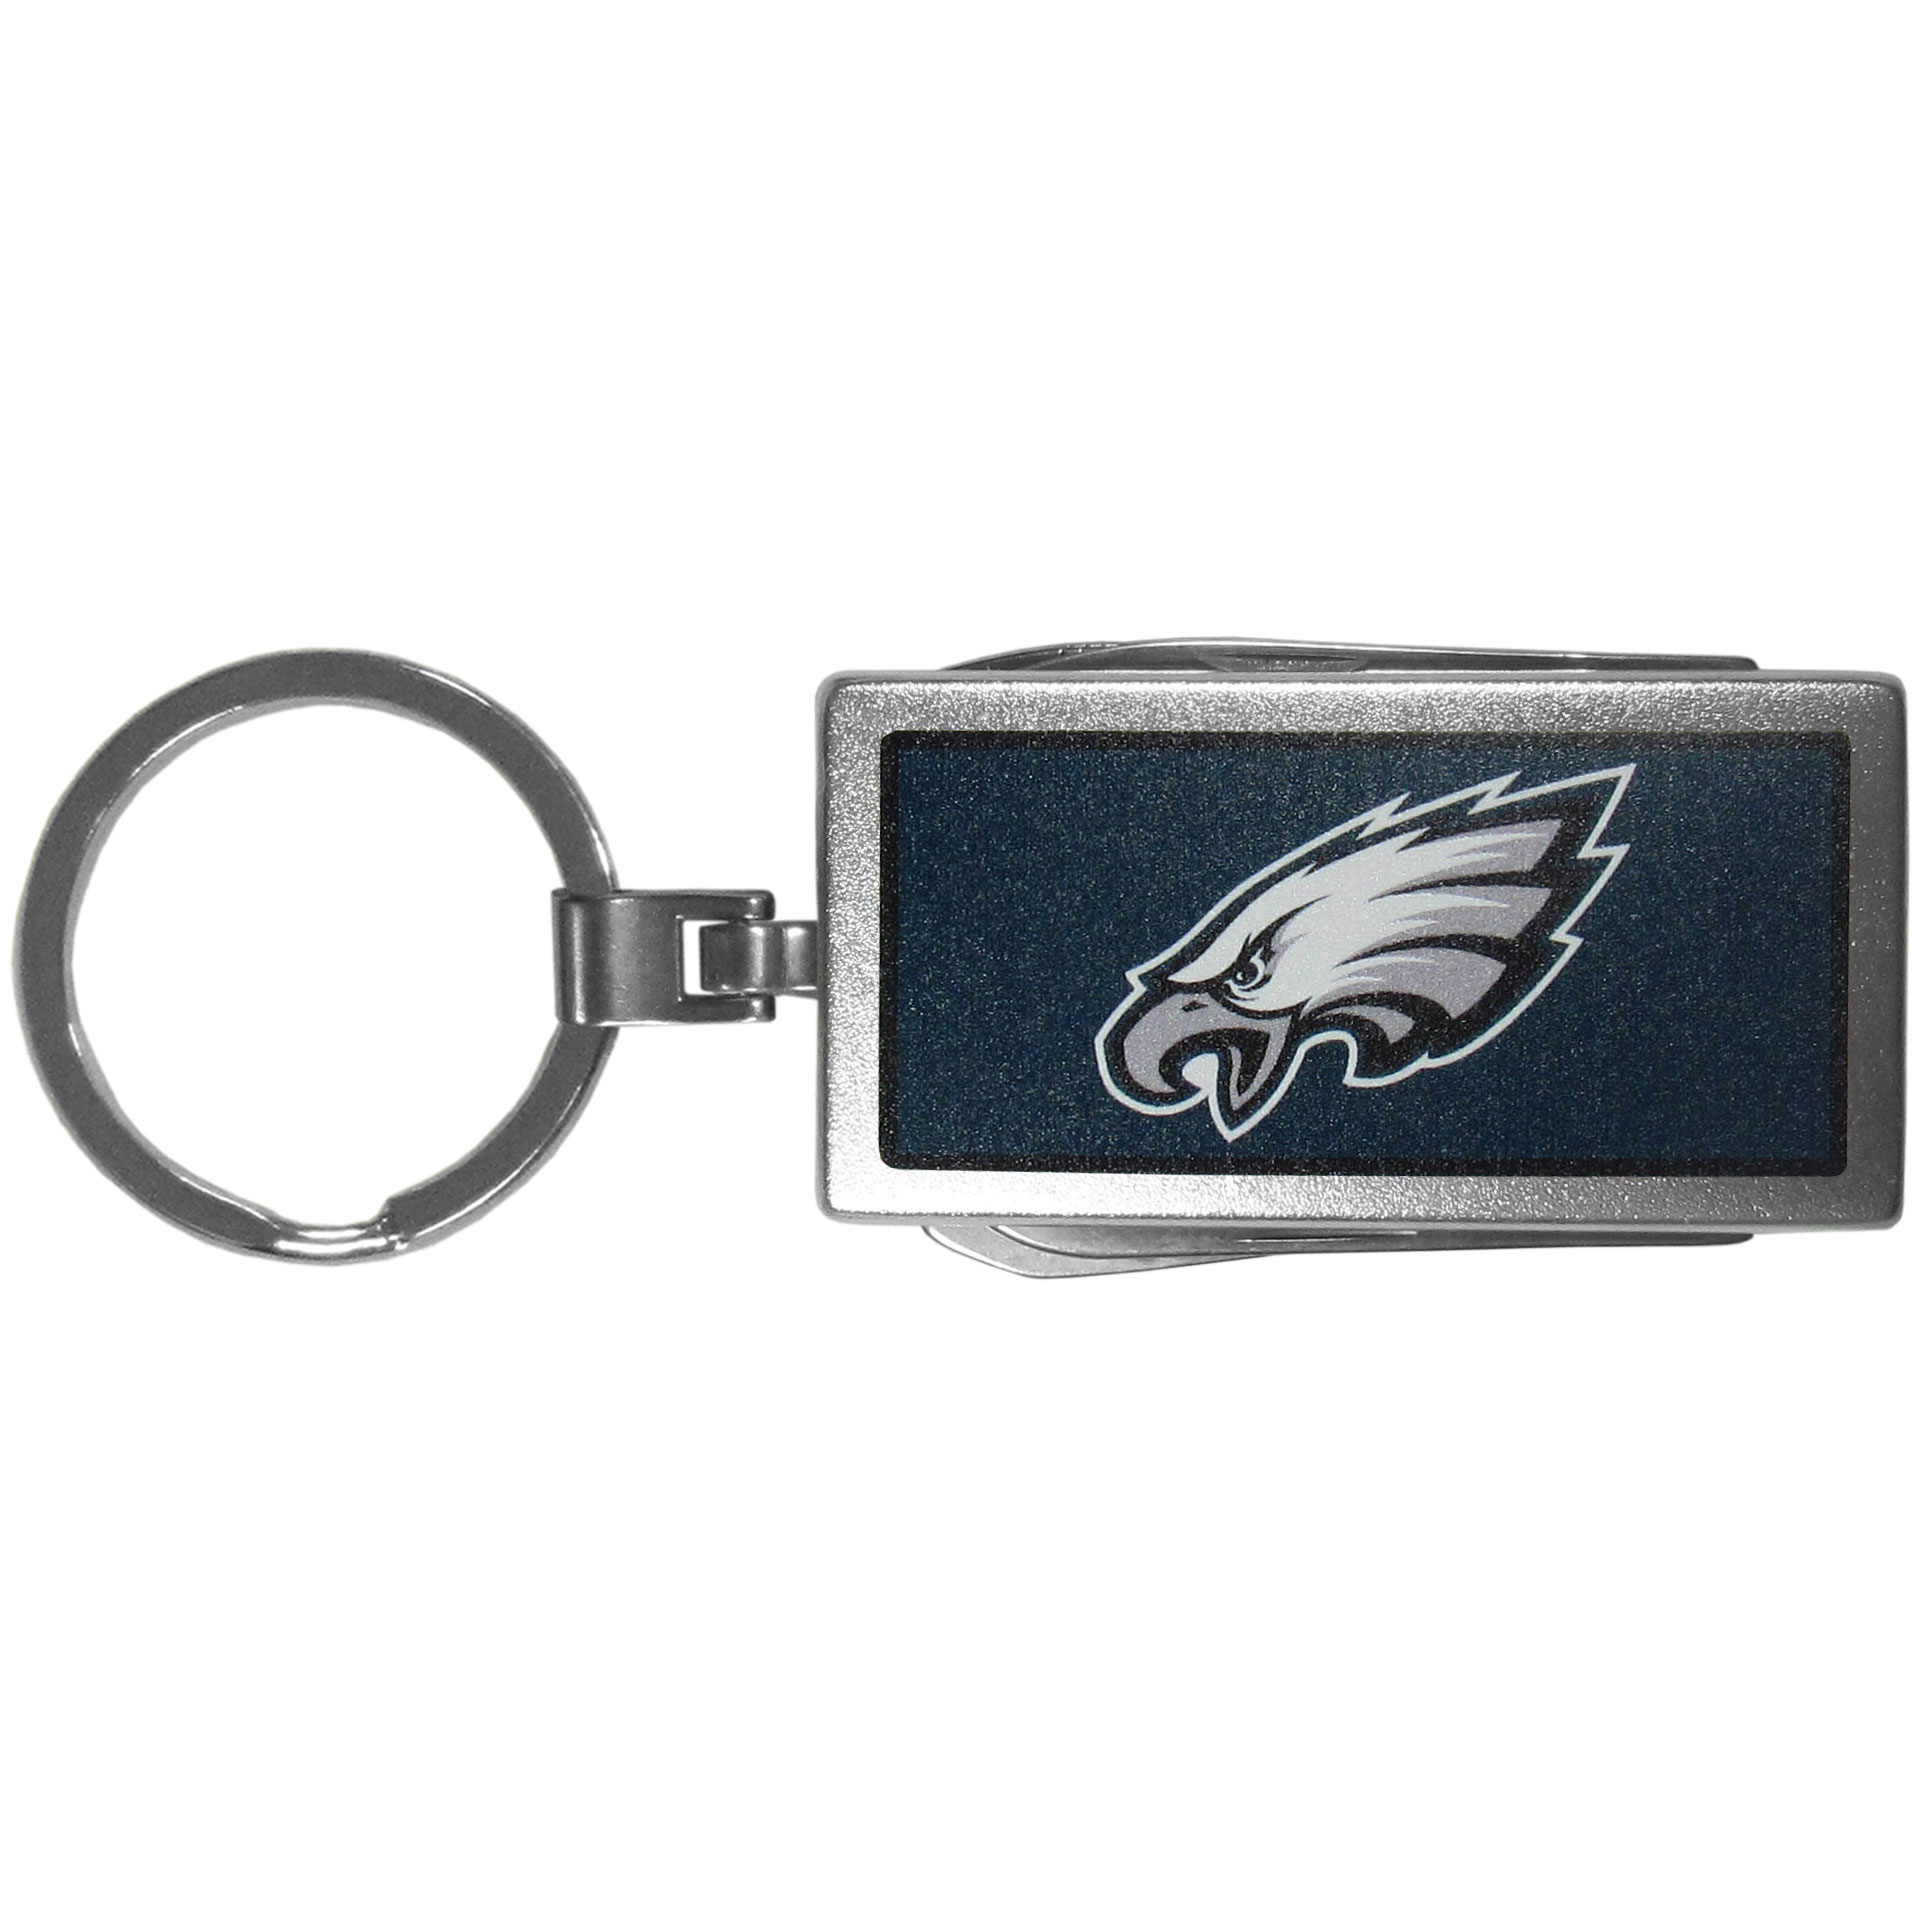 Philadelphia Eagles Multi-tool Key Chain, Logo - Be the hero at the tailgate, camping, or on a Friday night with your Philadelphia Eagles Multi-Tool Keychain which comes complete with bottle opener, scissors, knife, nail file and screw driver. Be it opening a package or a beverage Siskiyou's Multi-Tool Keychain goes wherever your keys do. The keychain hangs at 4 inches long when closed.